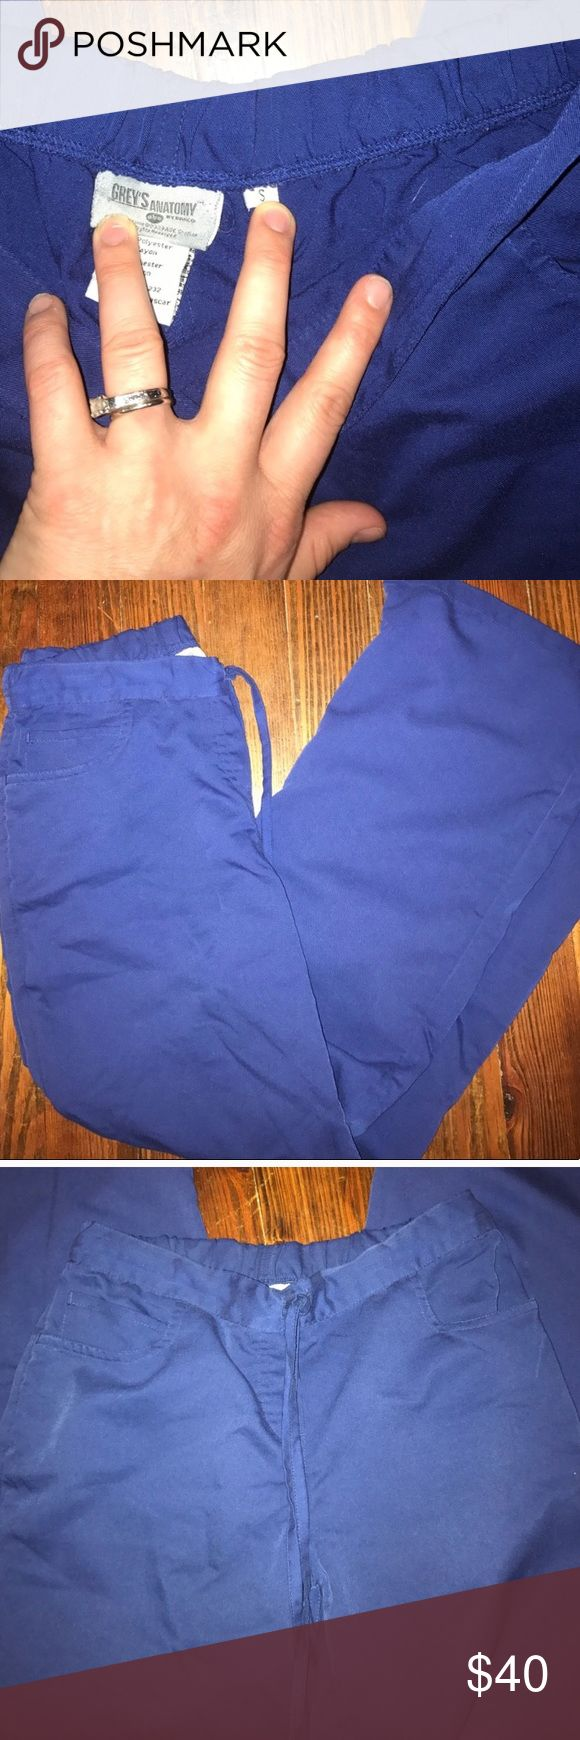 """Greys anatomy scrub set This color I believe is Heather. This color is between a royal blue and navy blue. If you compared them to both royal blue and navy blue you can definitely tell there is a color difference! These would be great for those who don't have color assigned colors. These are in excellent condition! Both size small. Inseam 30"""" for pants. Have only been worn a few times. greys anatomy Other"""